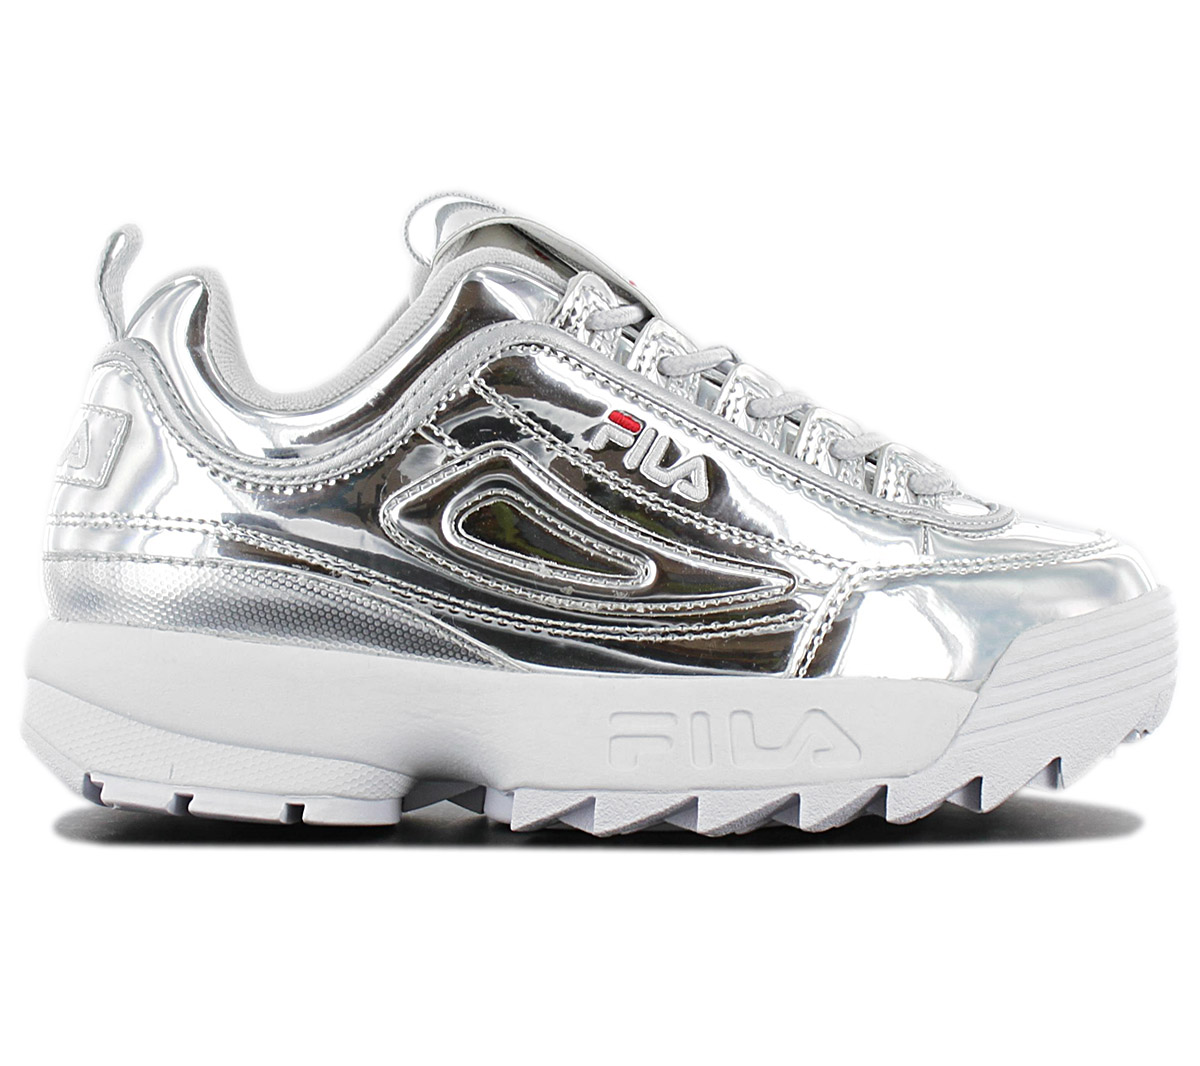 Details about Fila Disruptor M Low Women's Sneaker 1010608.3VW Metallic Silver Shoes New